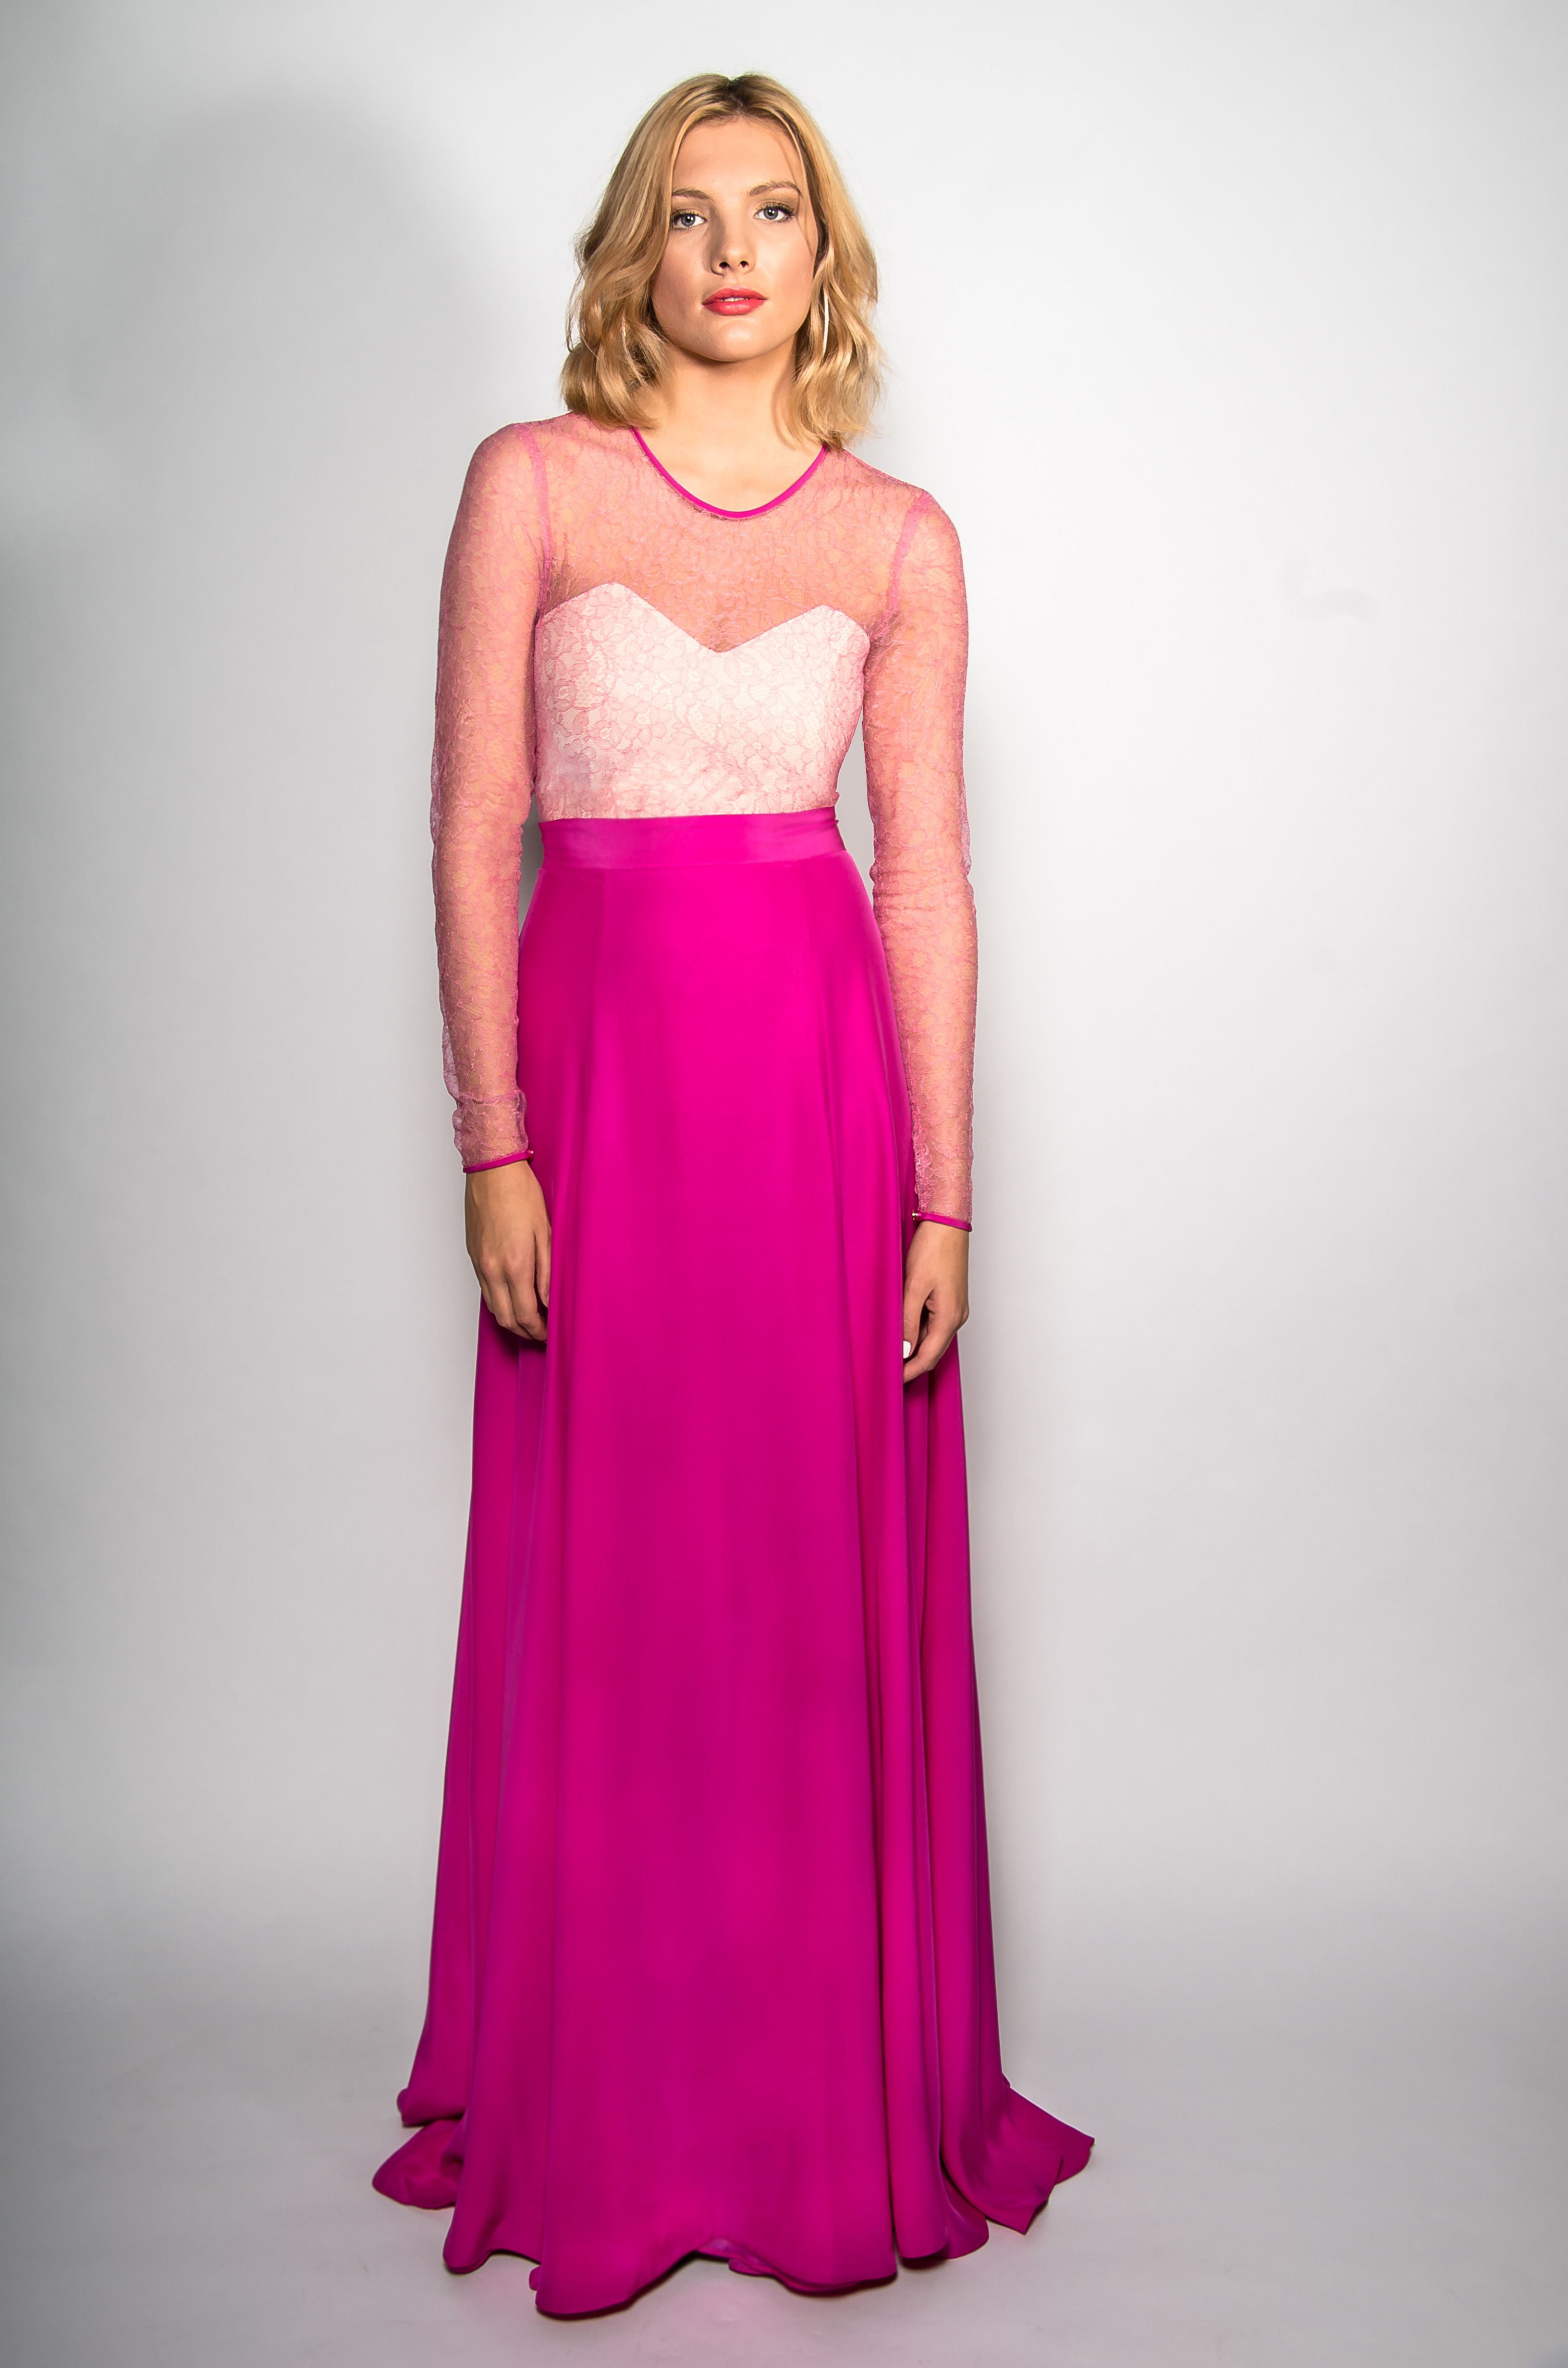 Belle & Bunty Red Carpet Collection ~ Hot pink silk crepe Darcey ...